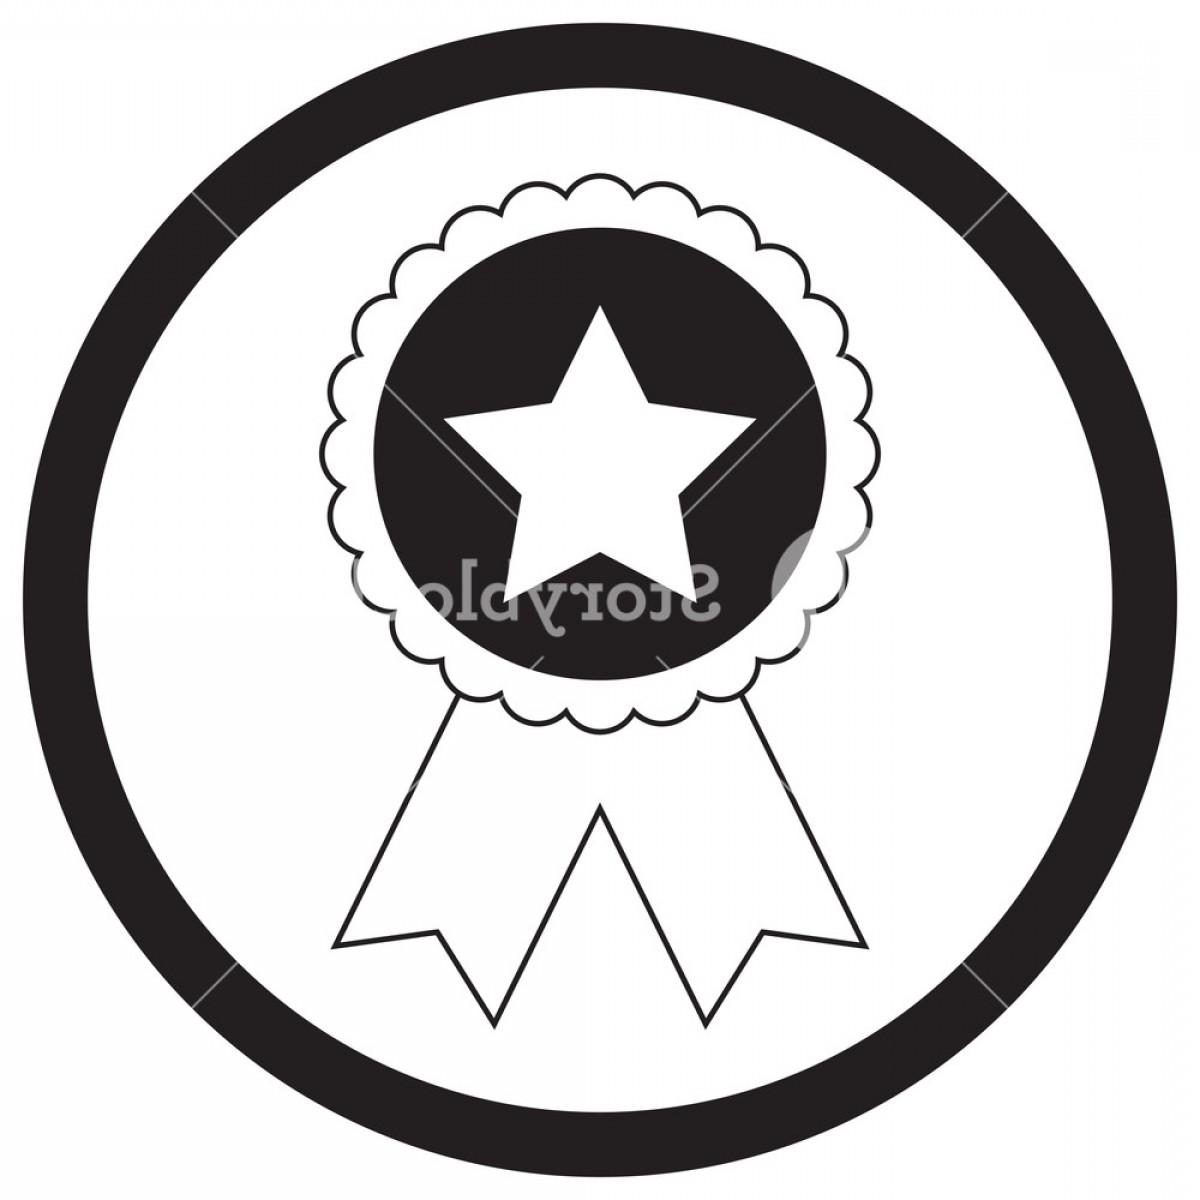 Star Badge Vector: Badge Star Monochrome Star With Ribbon Star Sticker Employee Of The Month Winner Badge Vector Illustration Reqlhfdwjlvqbmp